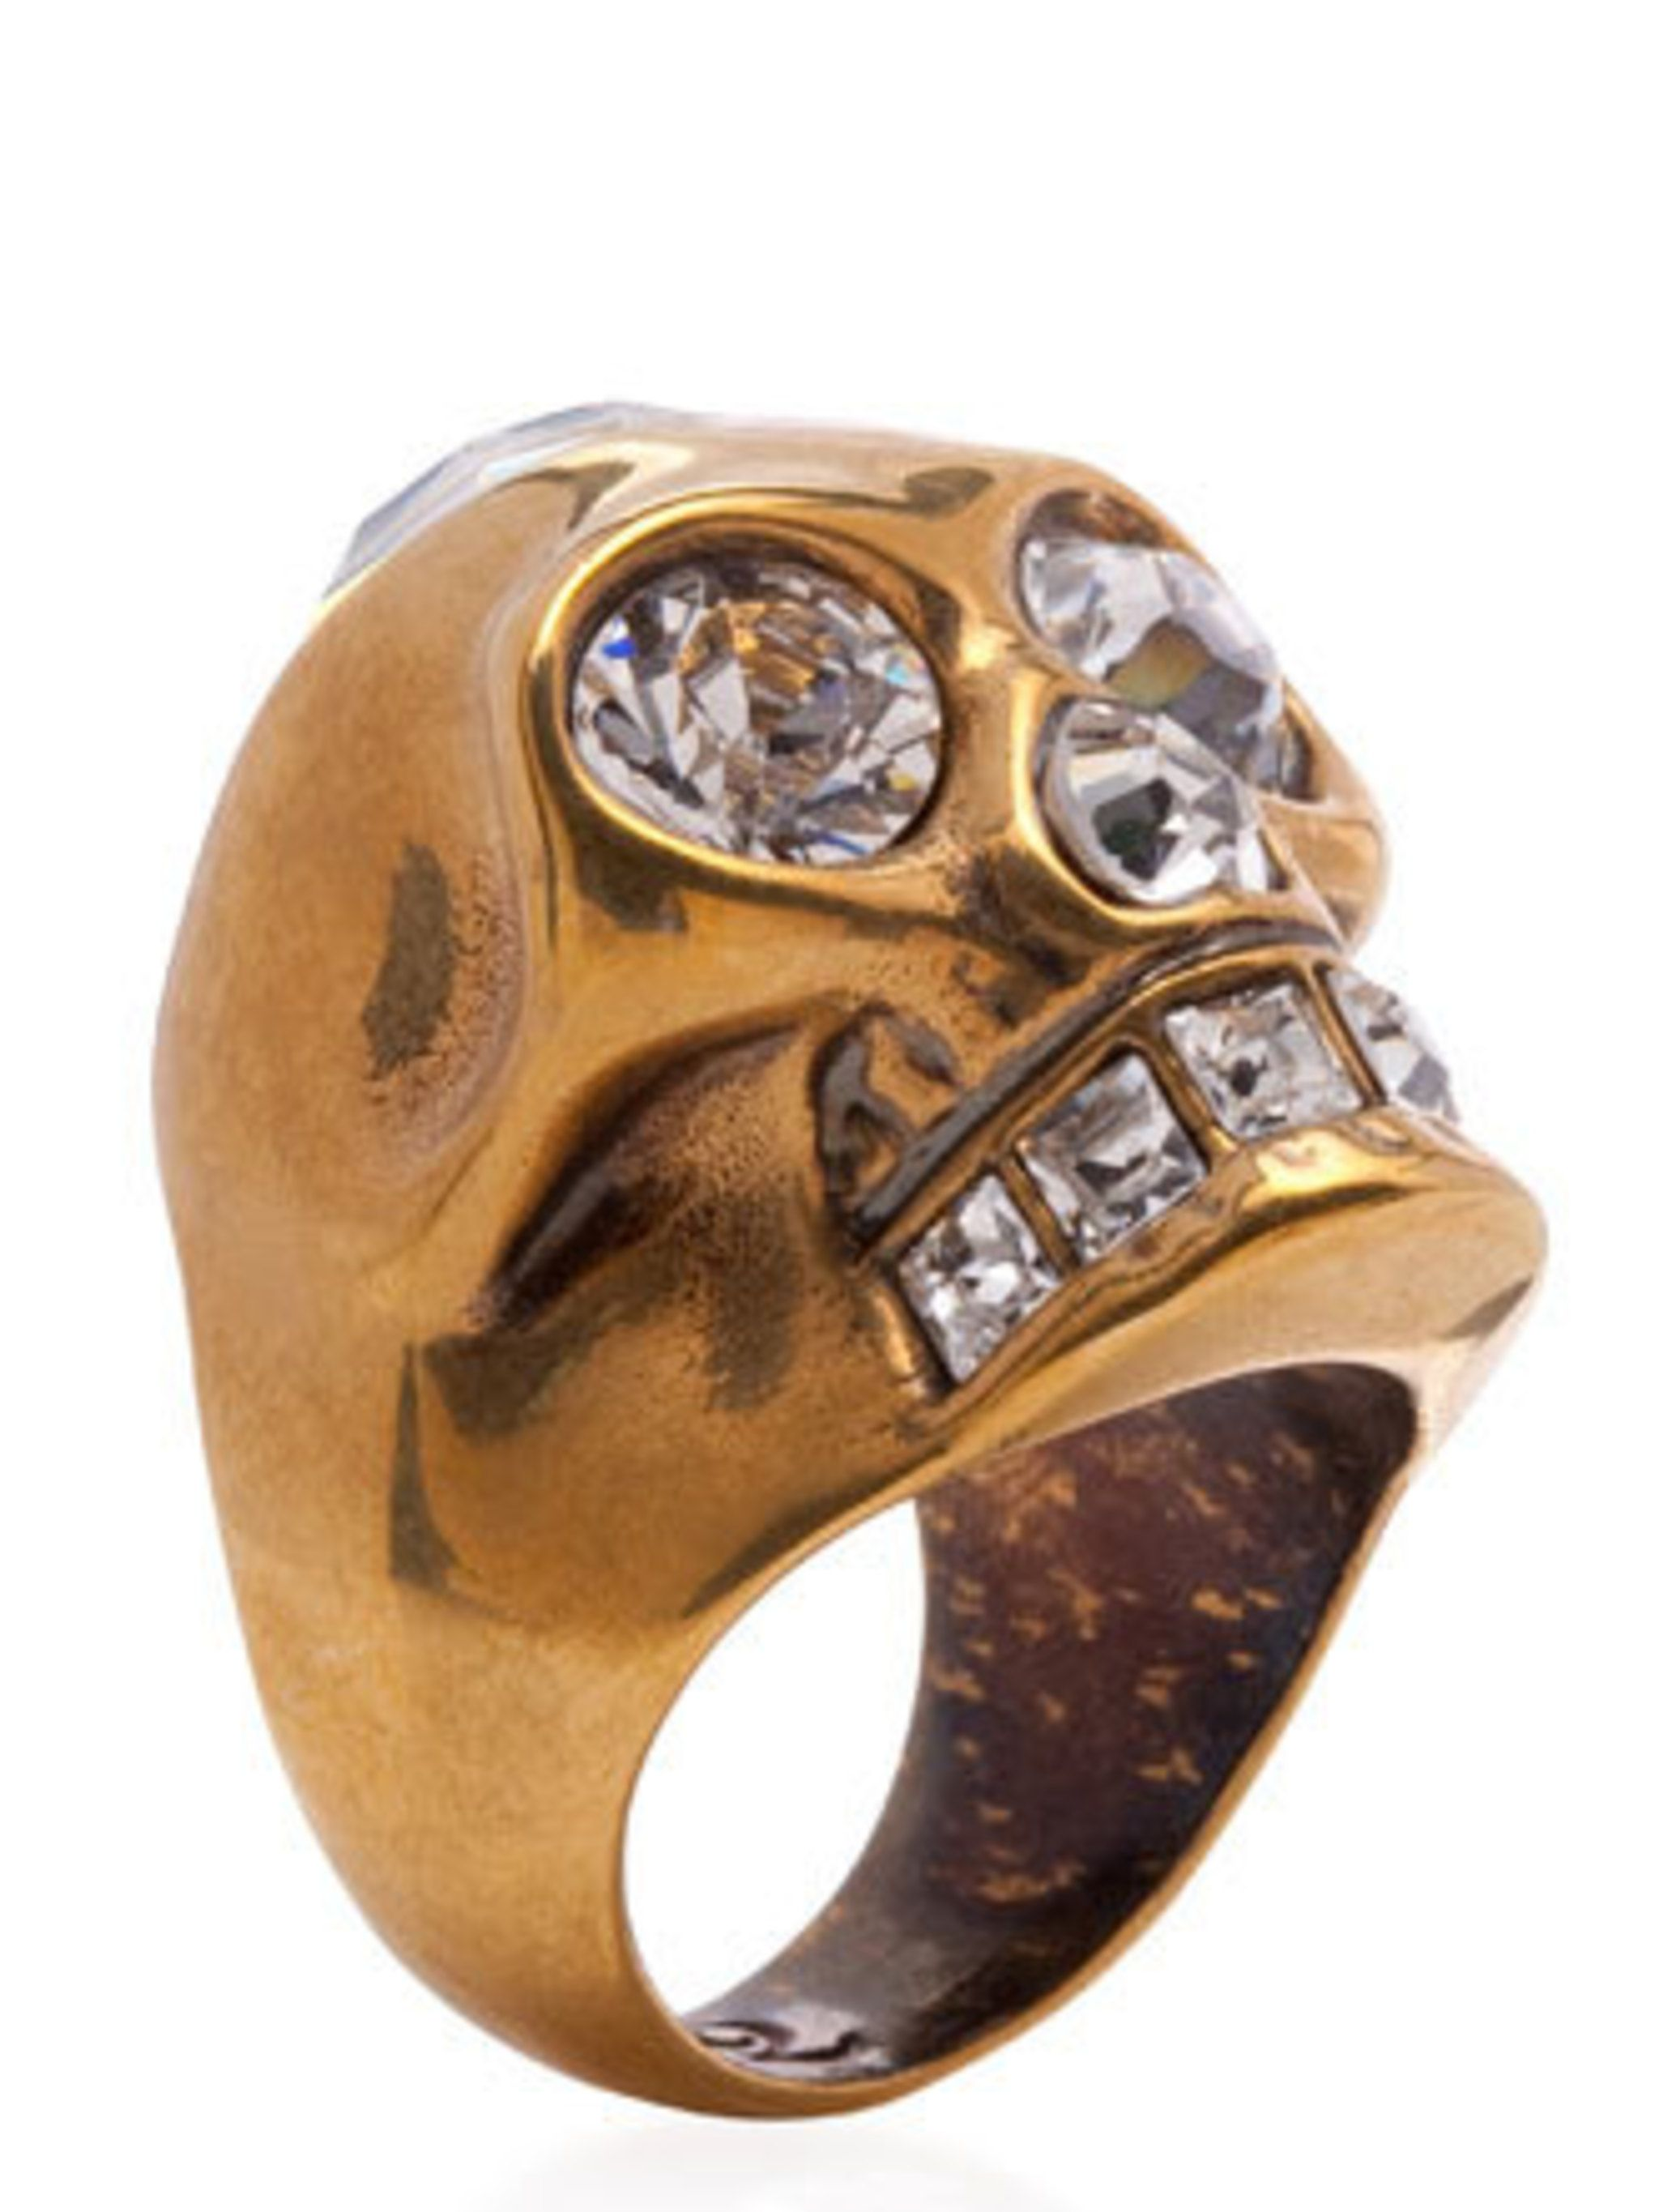 "<p>This statement ring will get you noticed and add a bit of sparkle to your outfit on sun-free days.Ring, £180 by Alexander McQueen at <a href=""http://shop.harveynichols.com/fcp/product/-//Heart-skull-cocktail-ring/330887"">Harvey Nichols</a></p>"